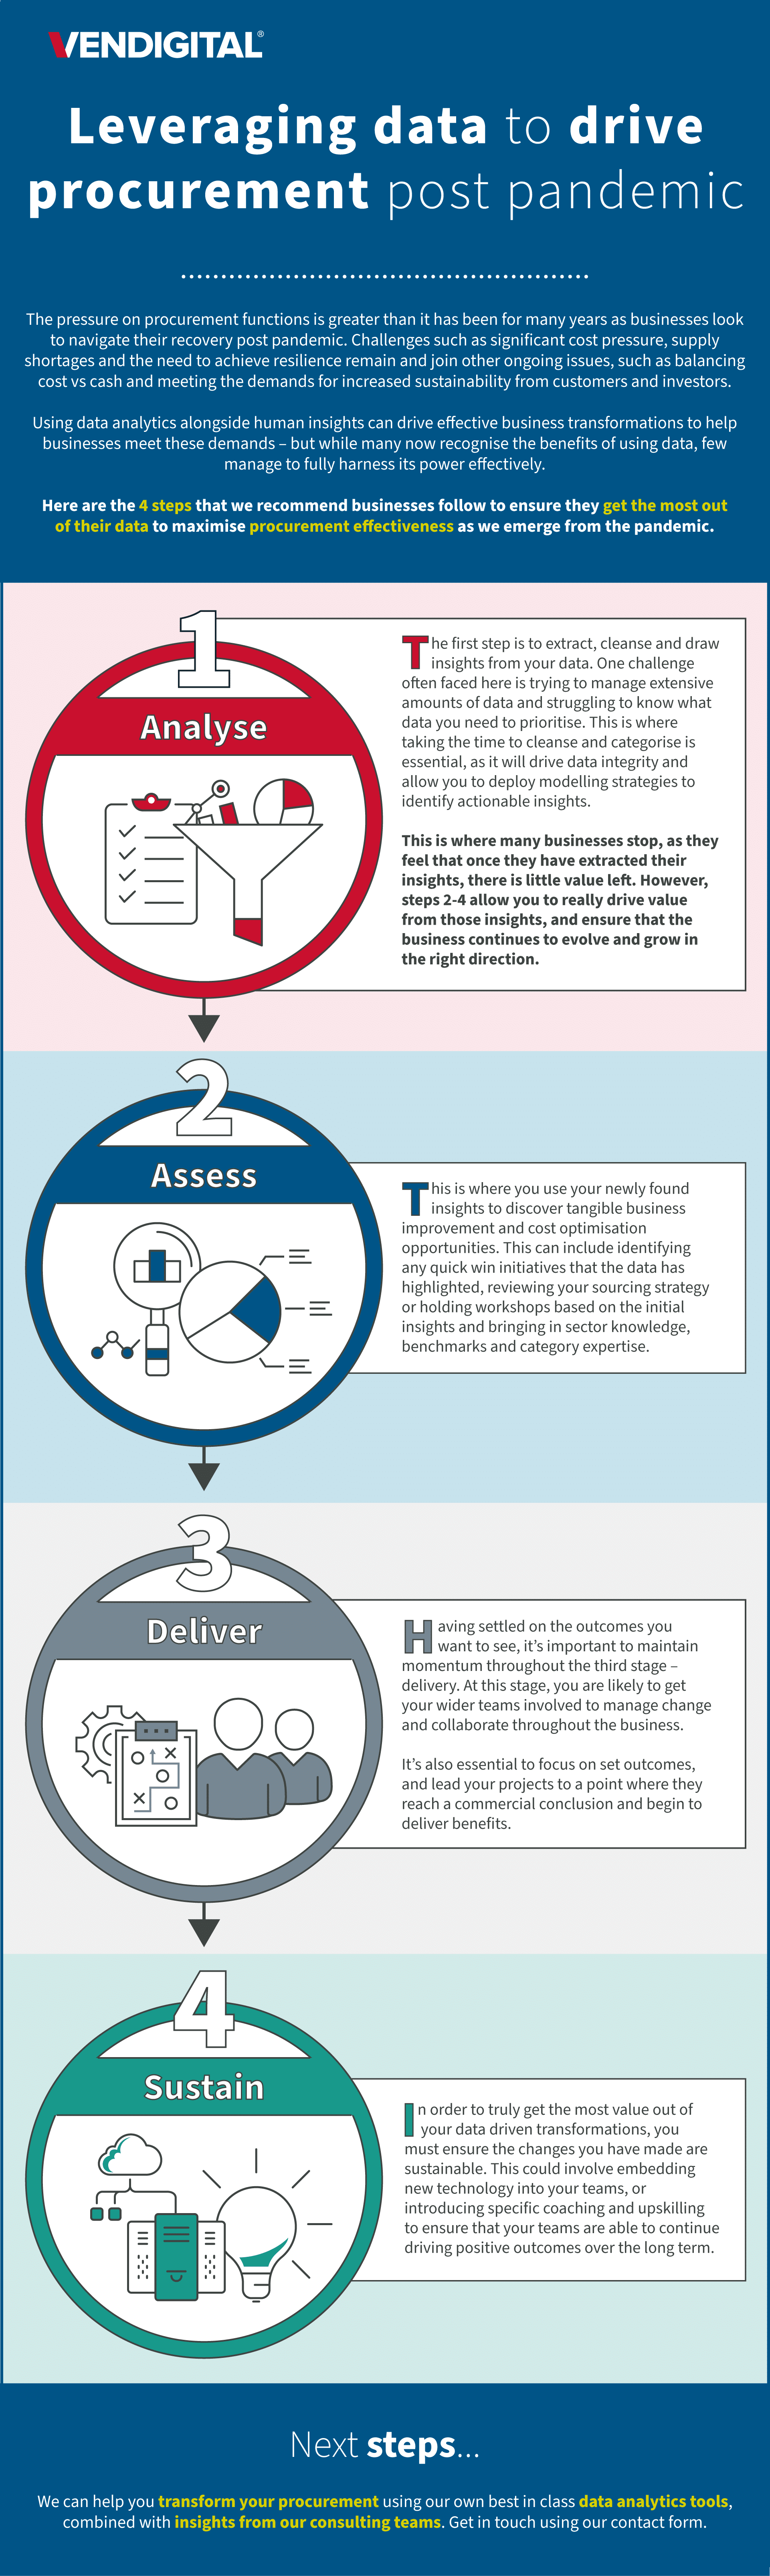 Leveraging data to drive procurement post pandemic infographic